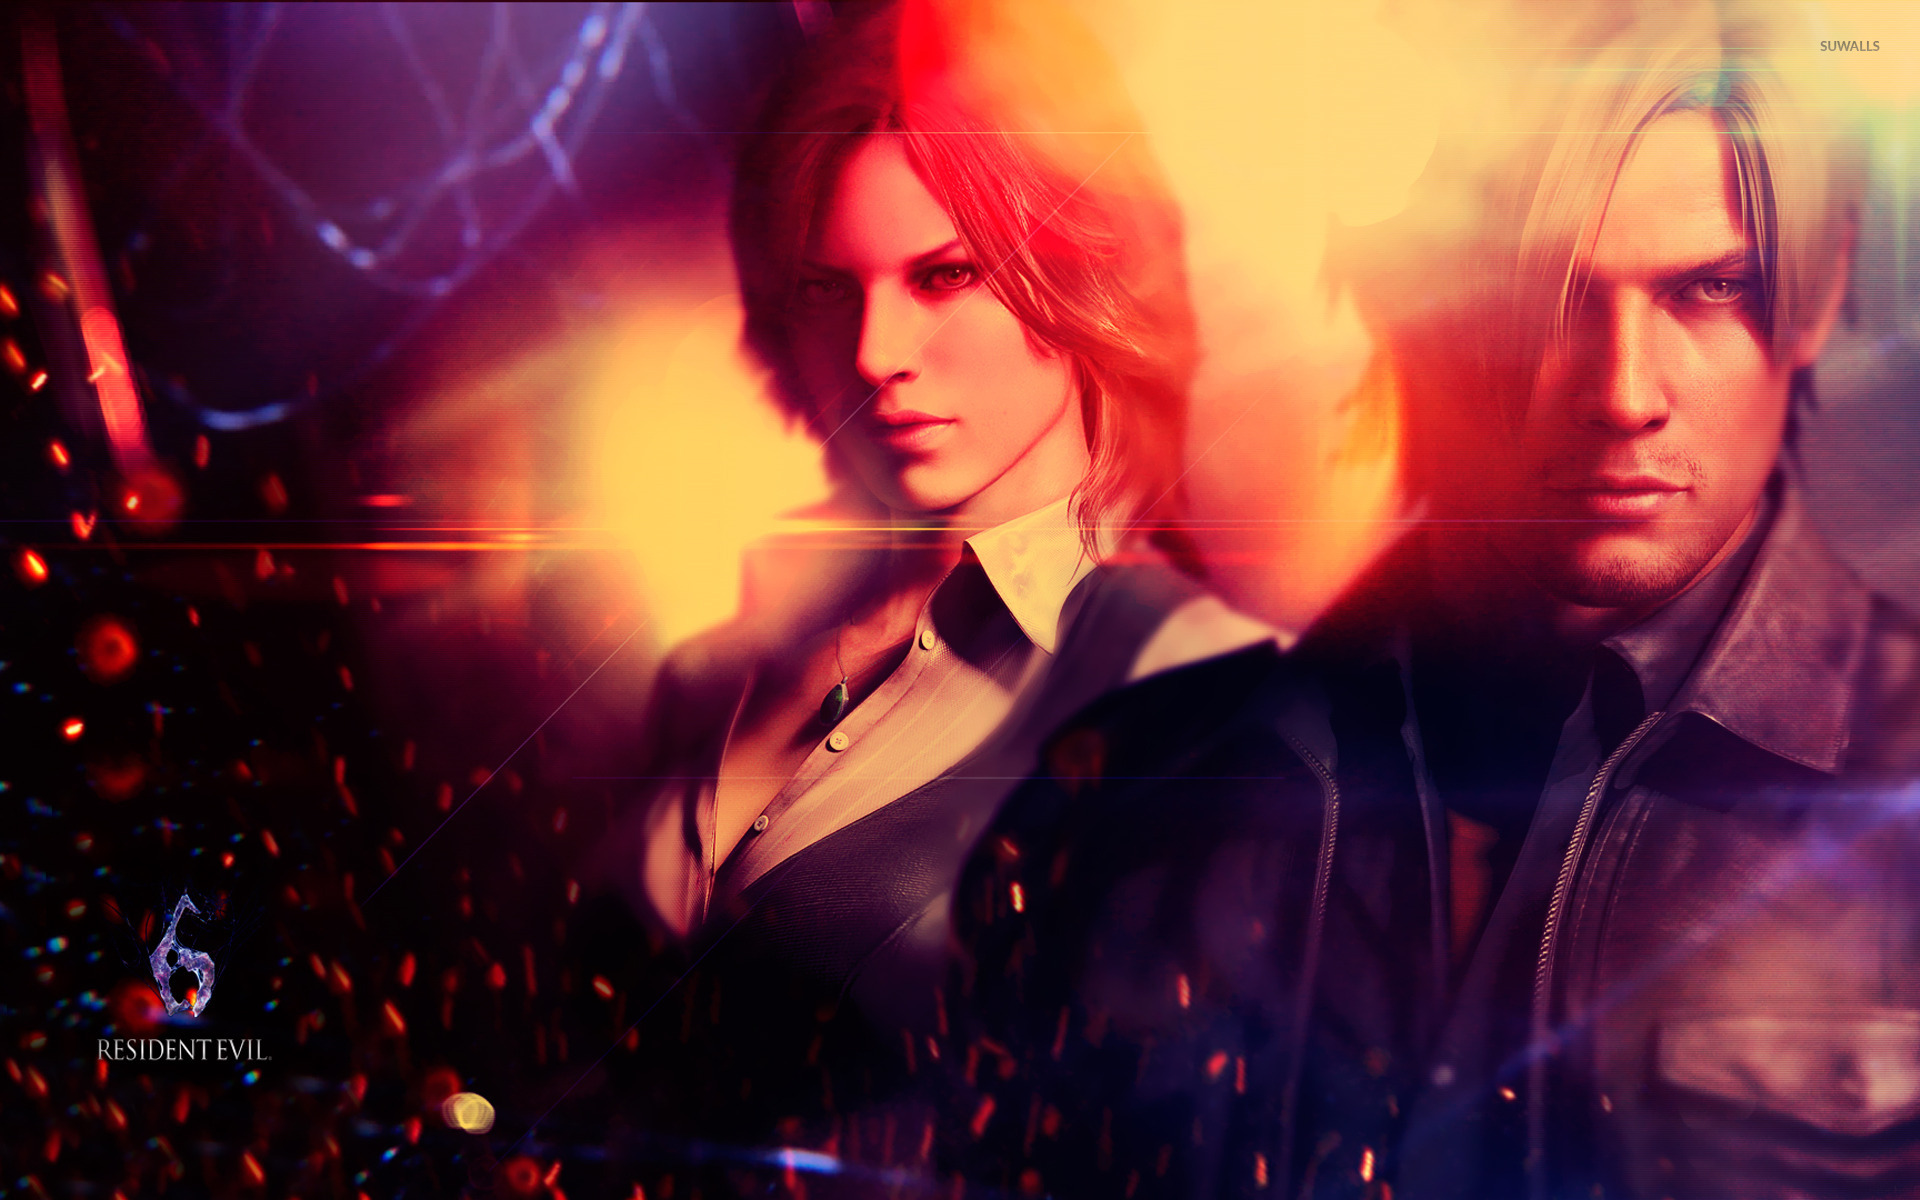 Resident Evil 6 5 Wallpaper Game Wallpapers 14758